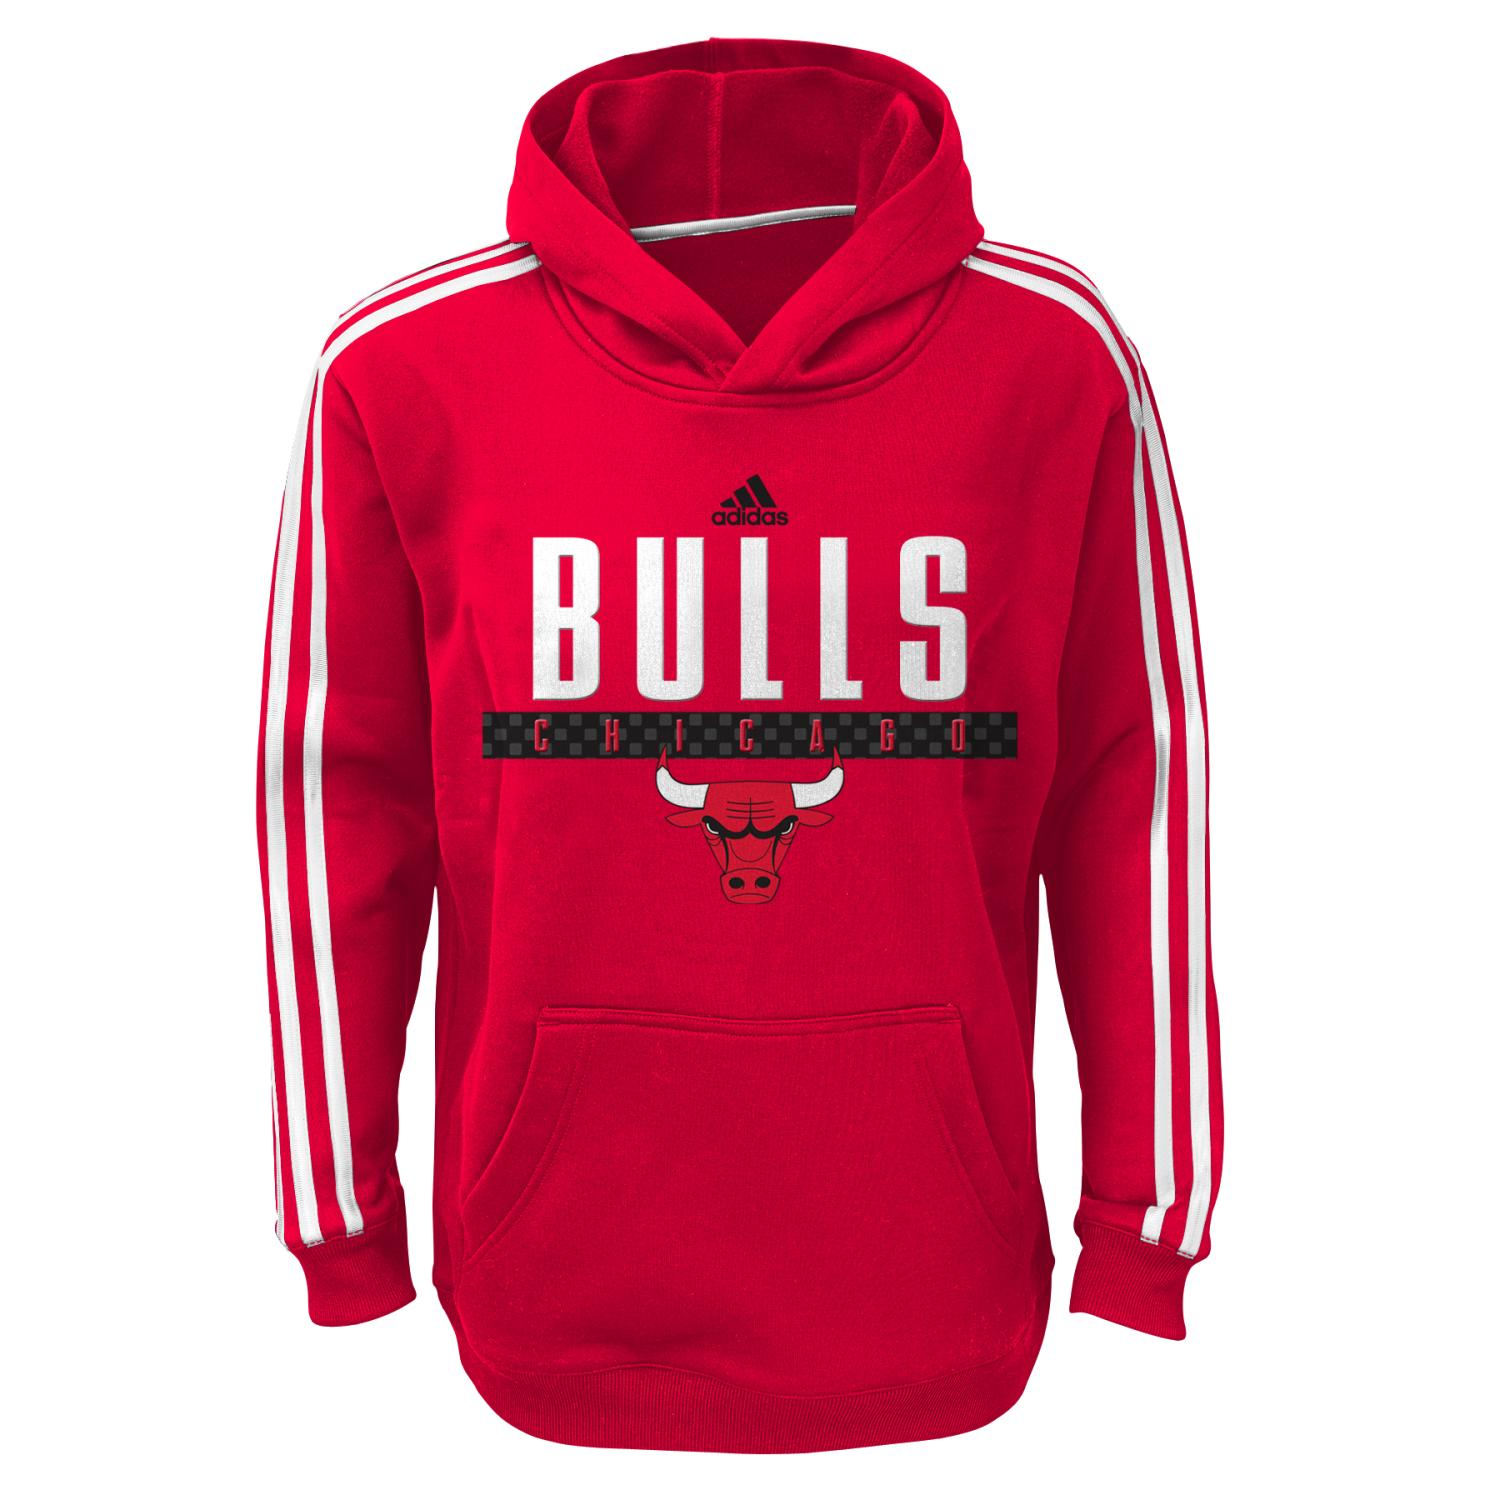 details about chicago bulls youth nba adidas playbook pullover. Black Bedroom Furniture Sets. Home Design Ideas